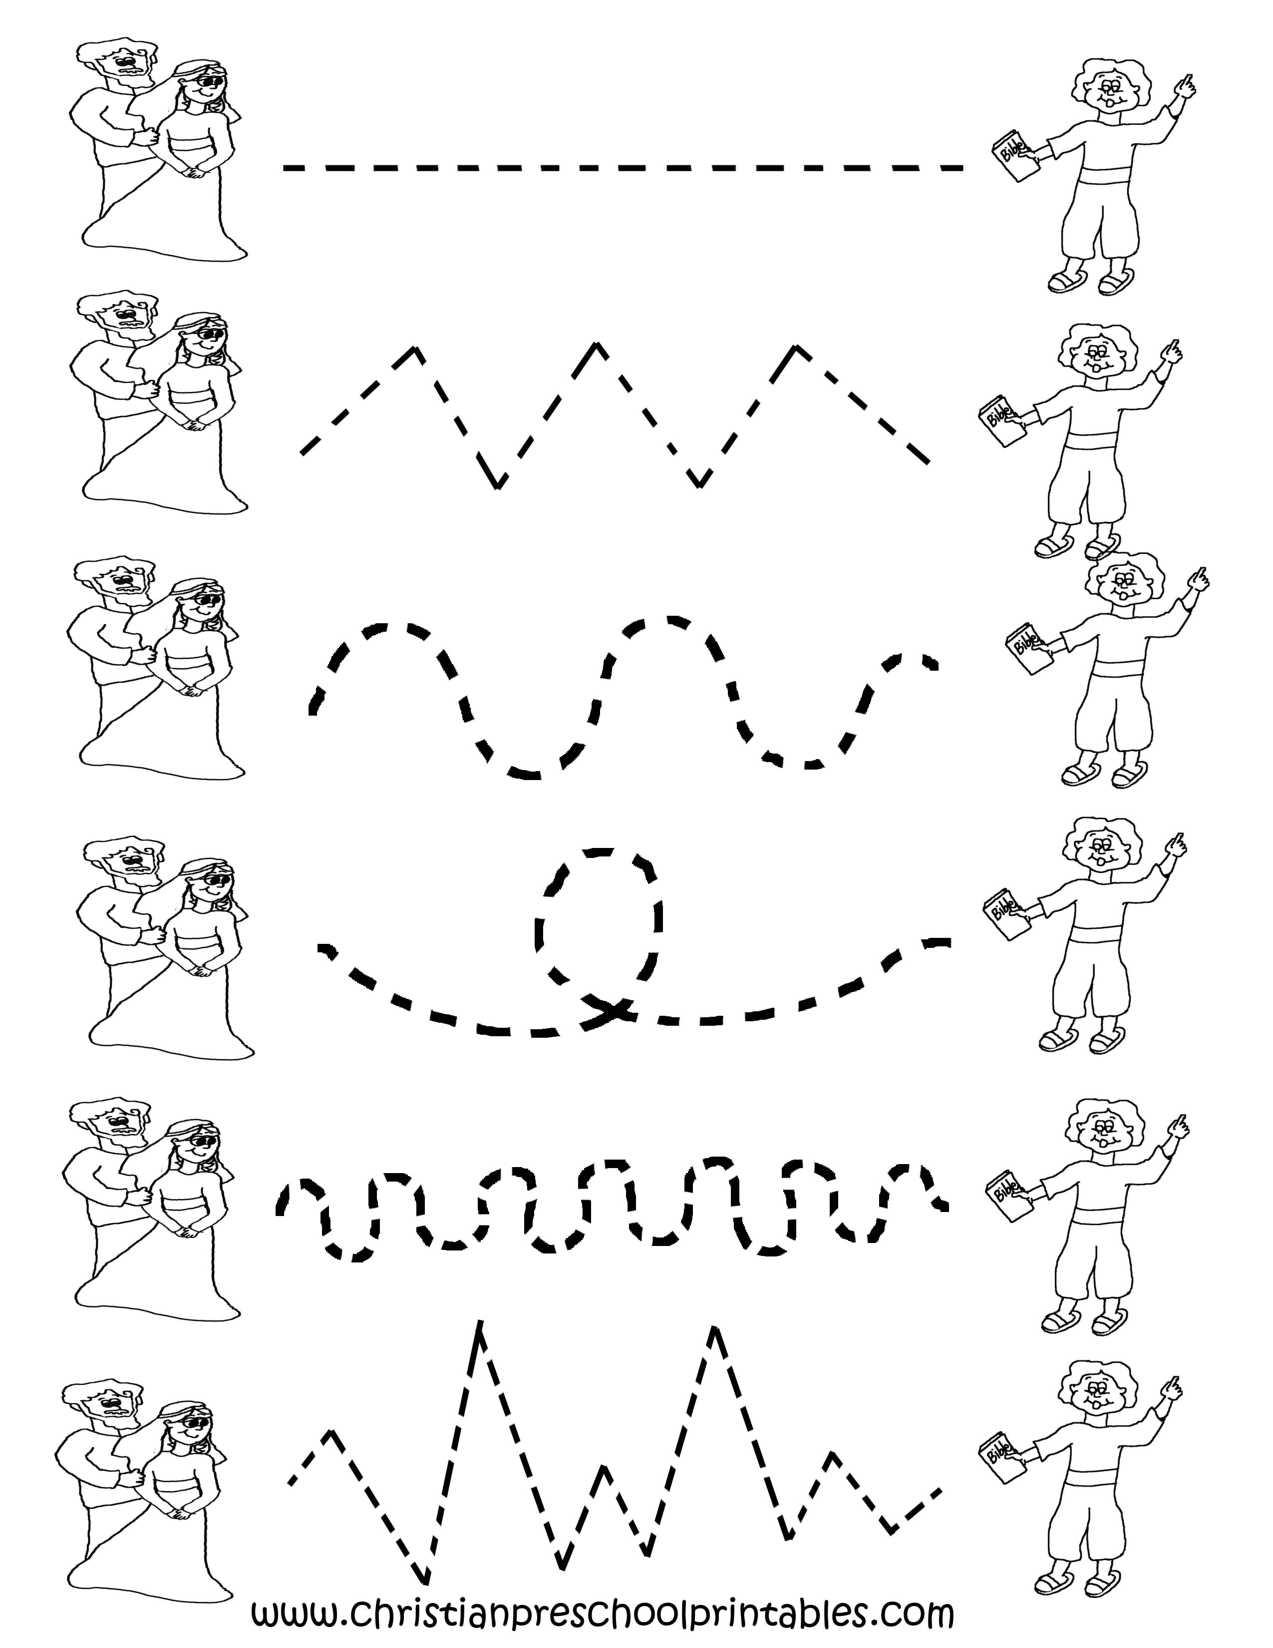 Image Detail For Preschool Tracing Worksheets